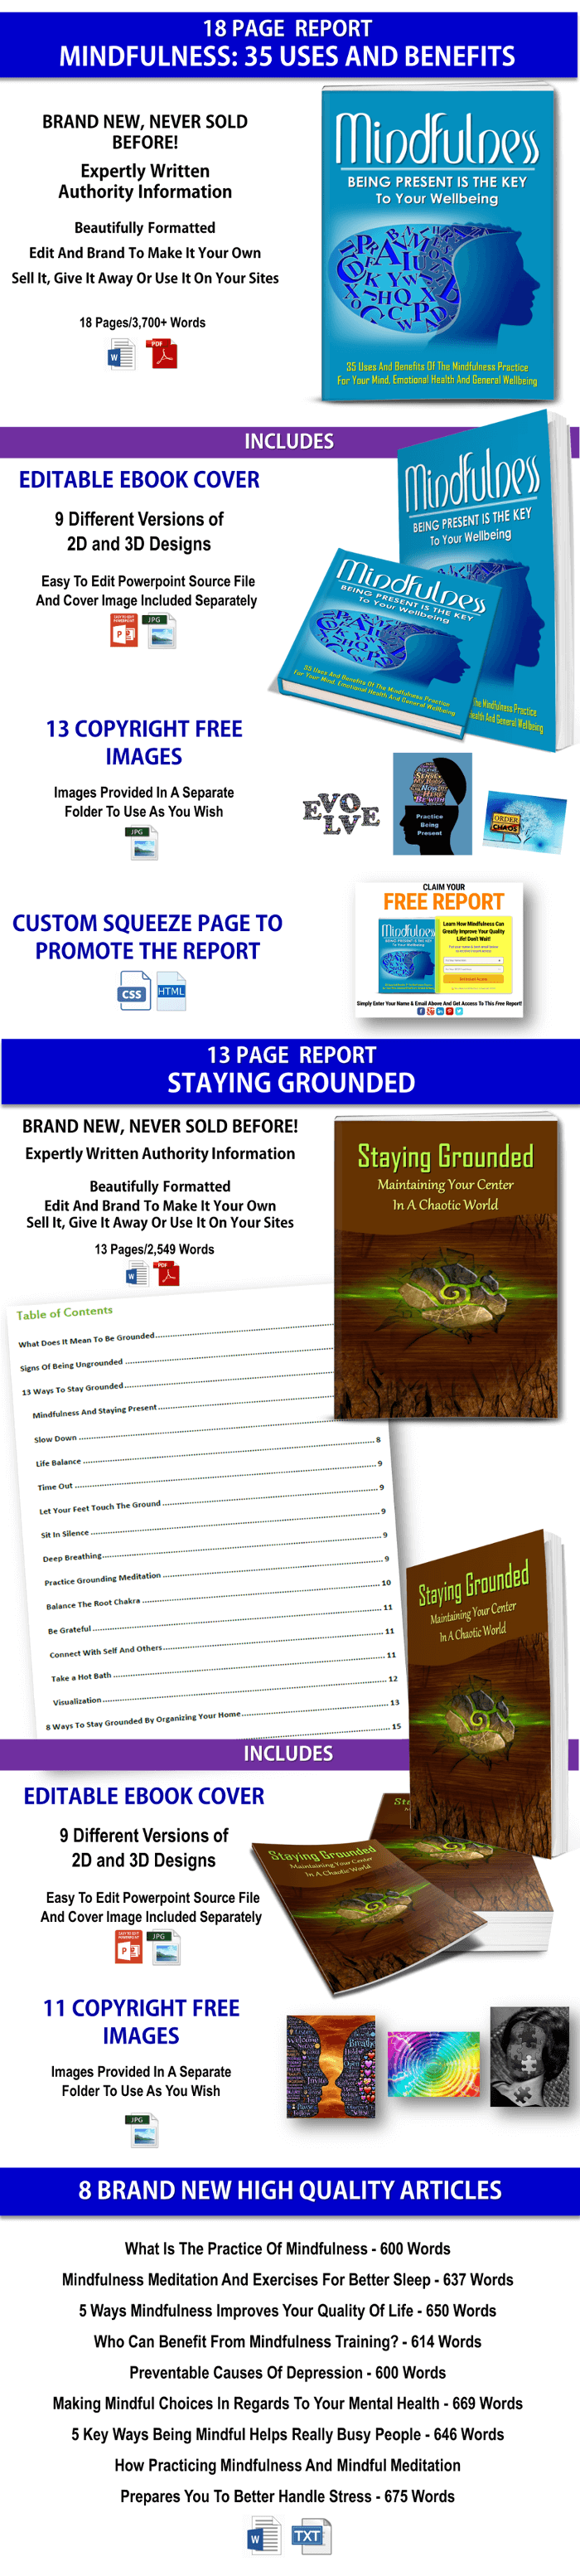 Mindfulness & Staying Grounded Reports & Articles PLR Pack